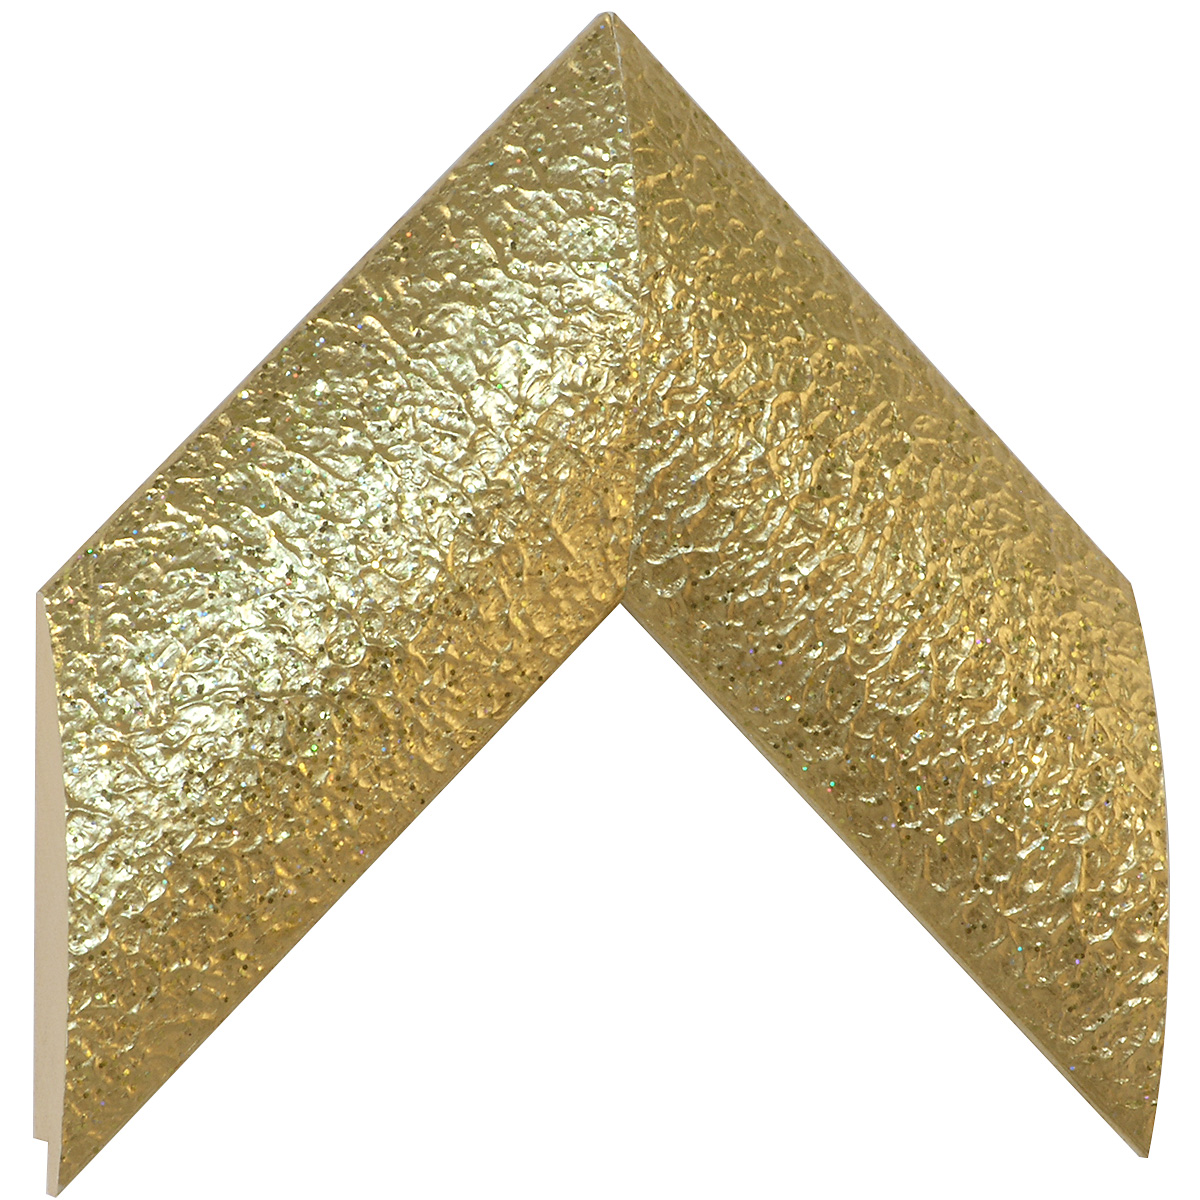 Moulding ayous 77mm - glossy embossed gold